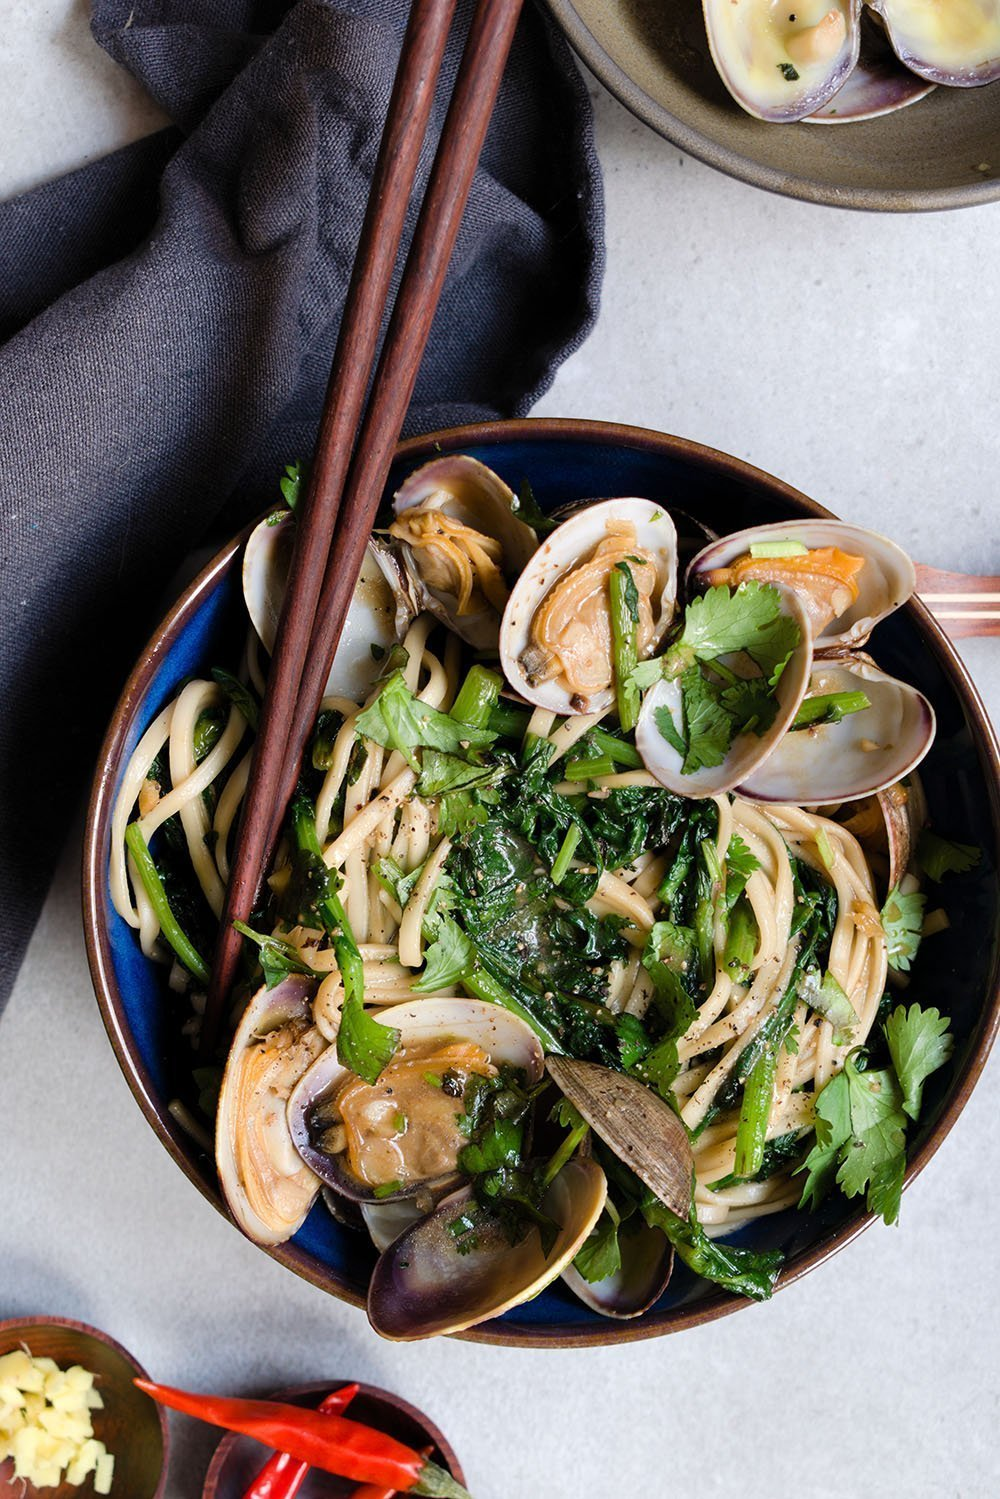 sizzled clams